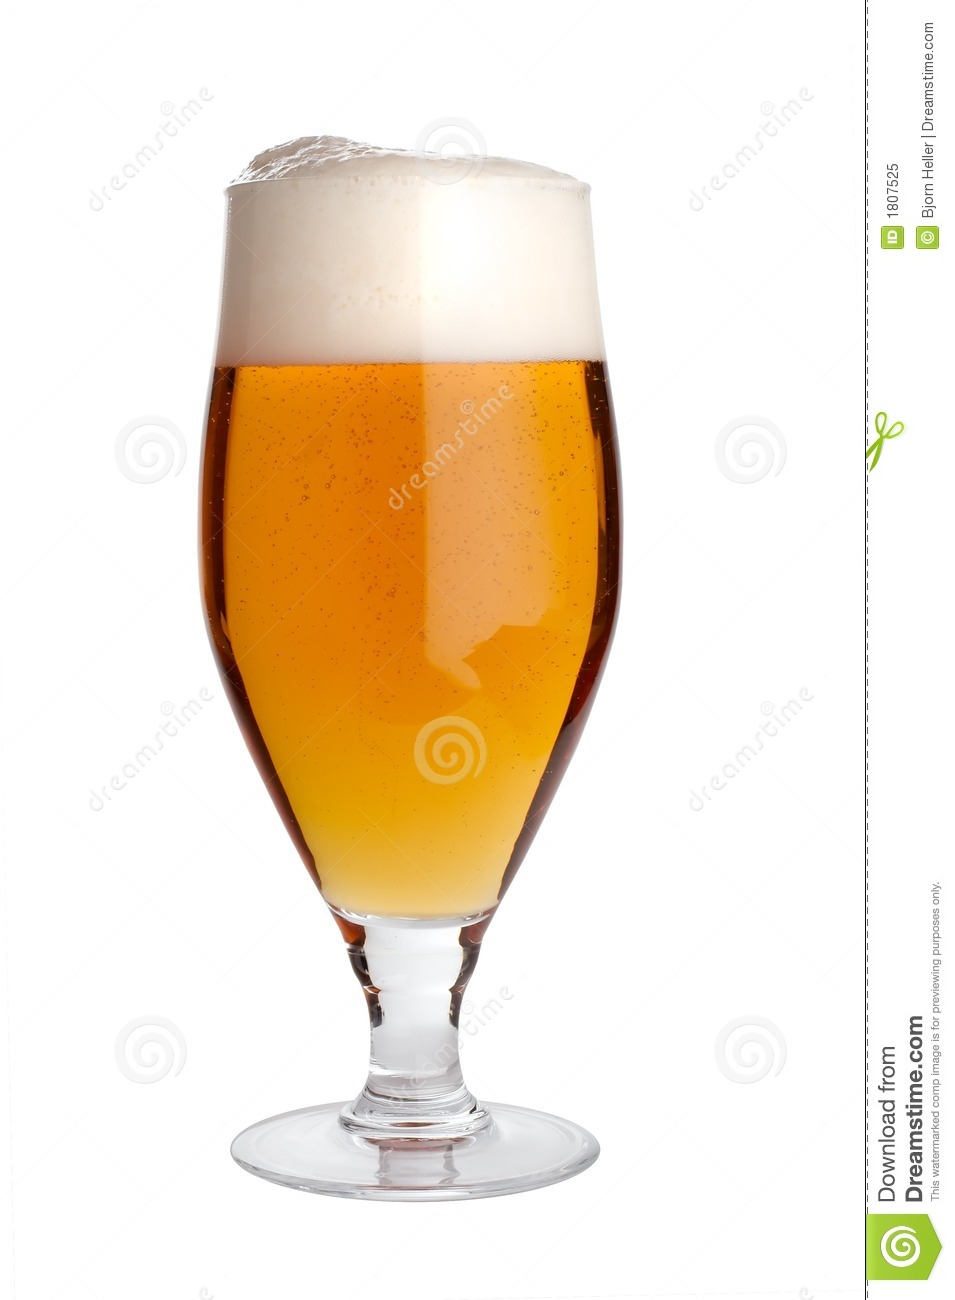 Bier Glas Glass Of Beer Stock Image Image Of Stout Drink Foam 1807525